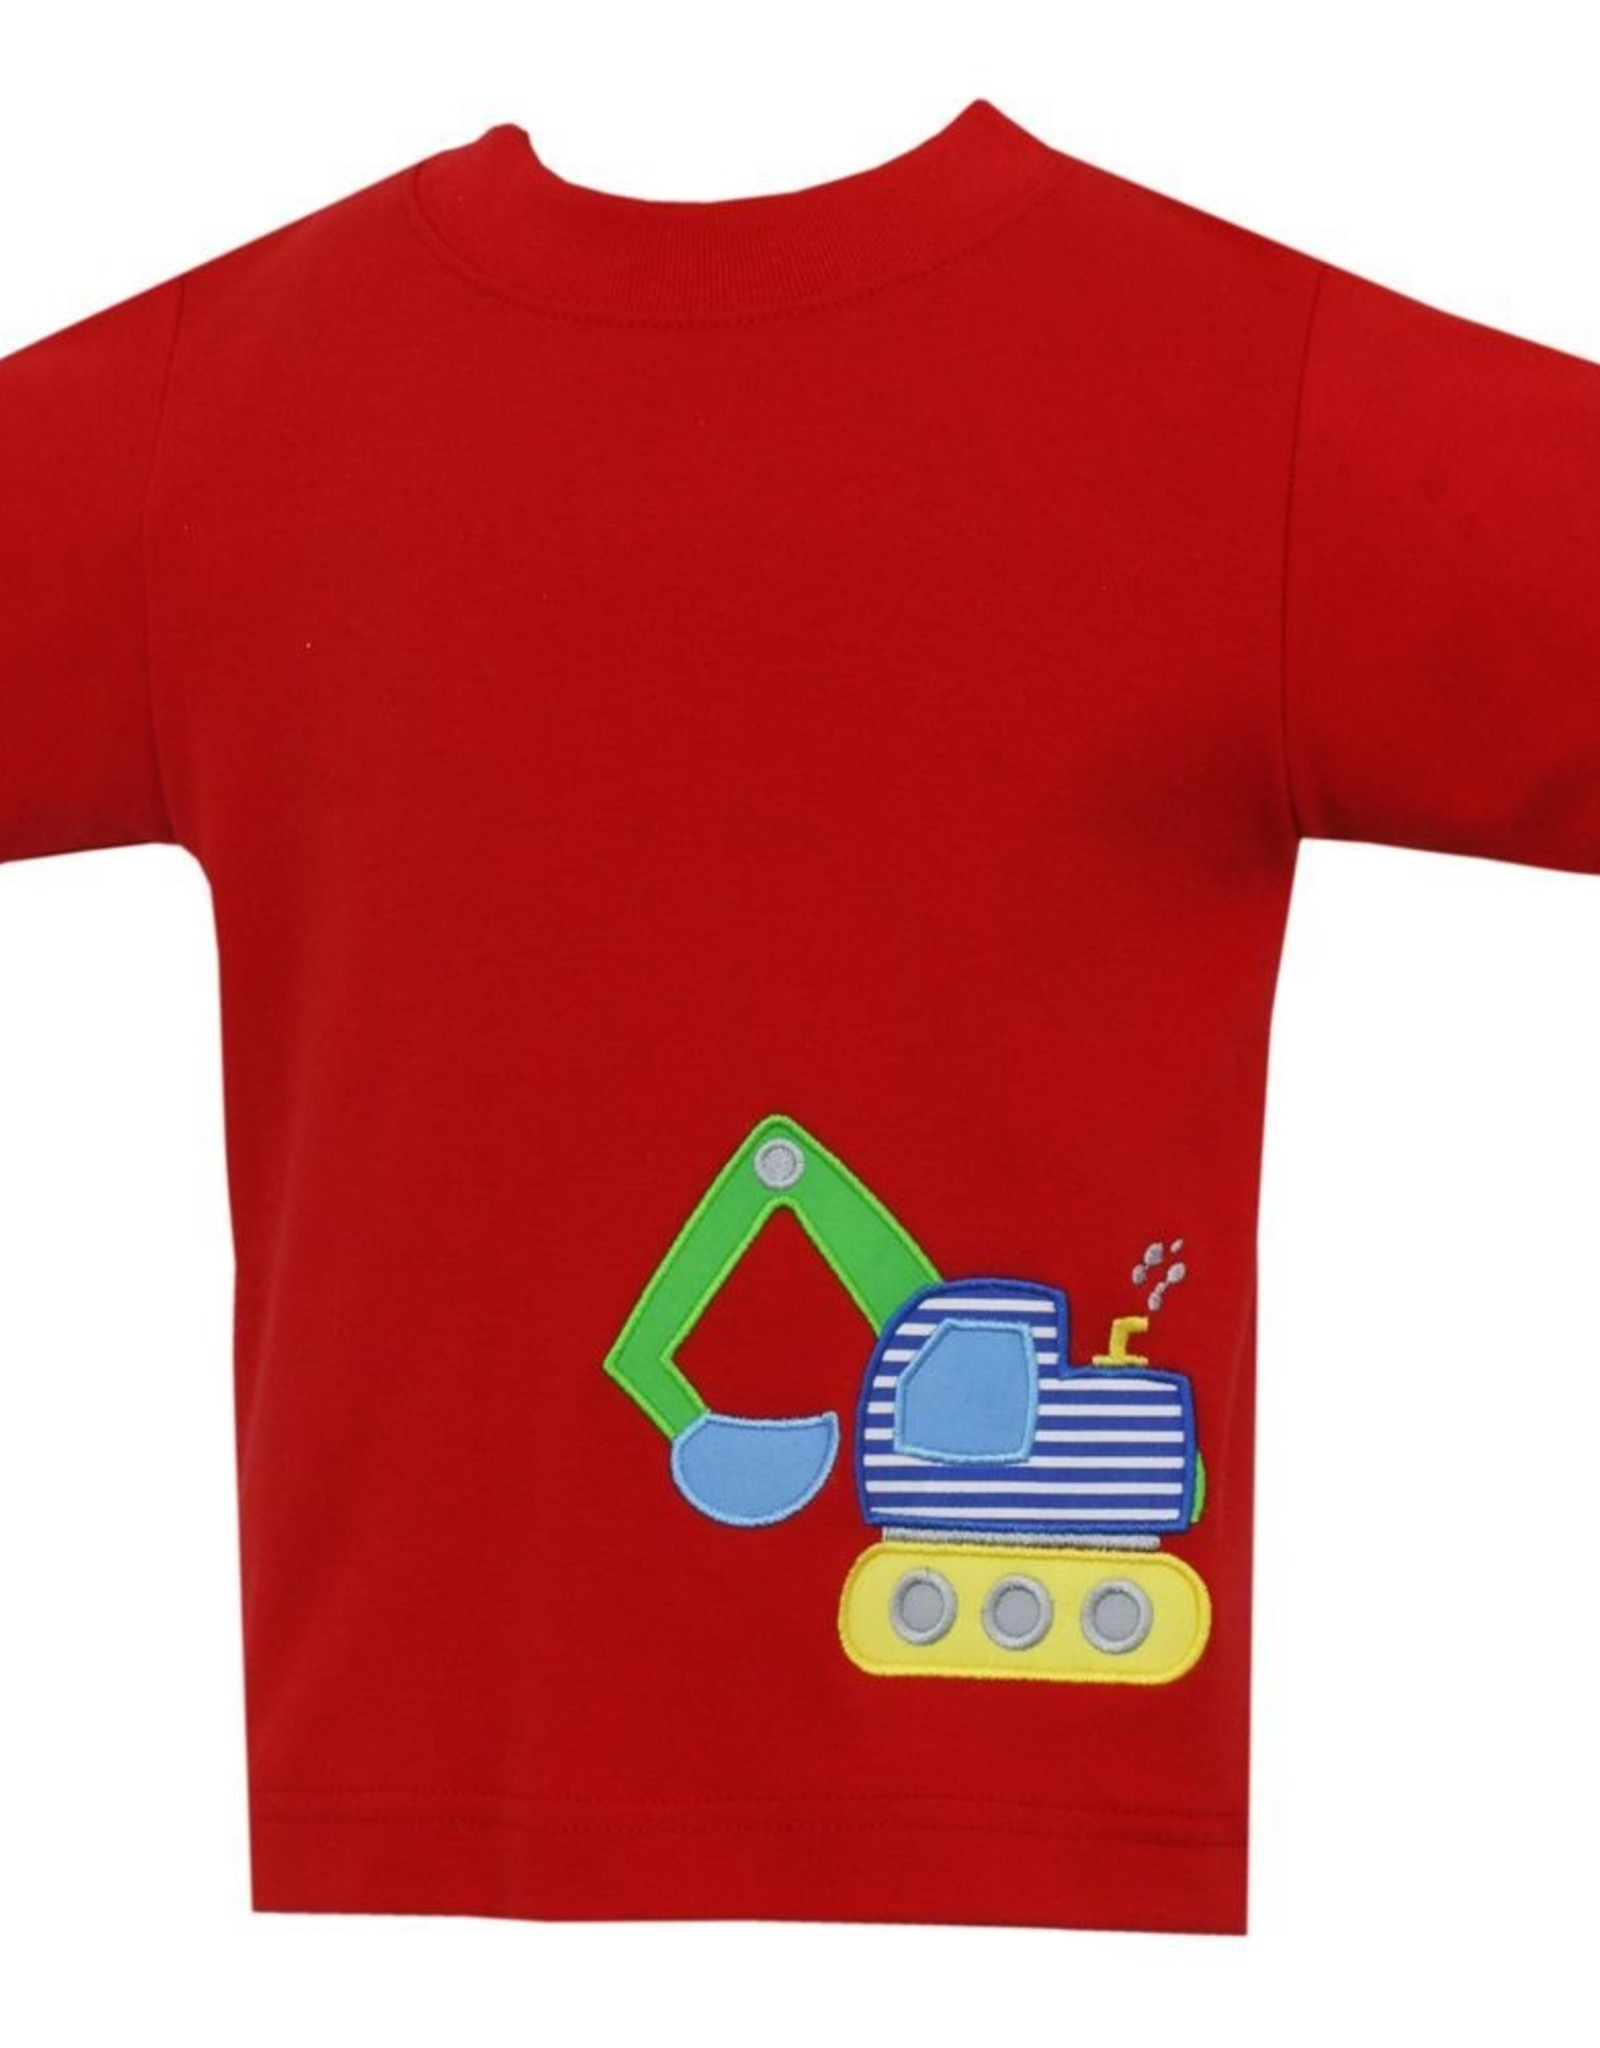 Claire and Charlie Excavator Applique Shirt Red